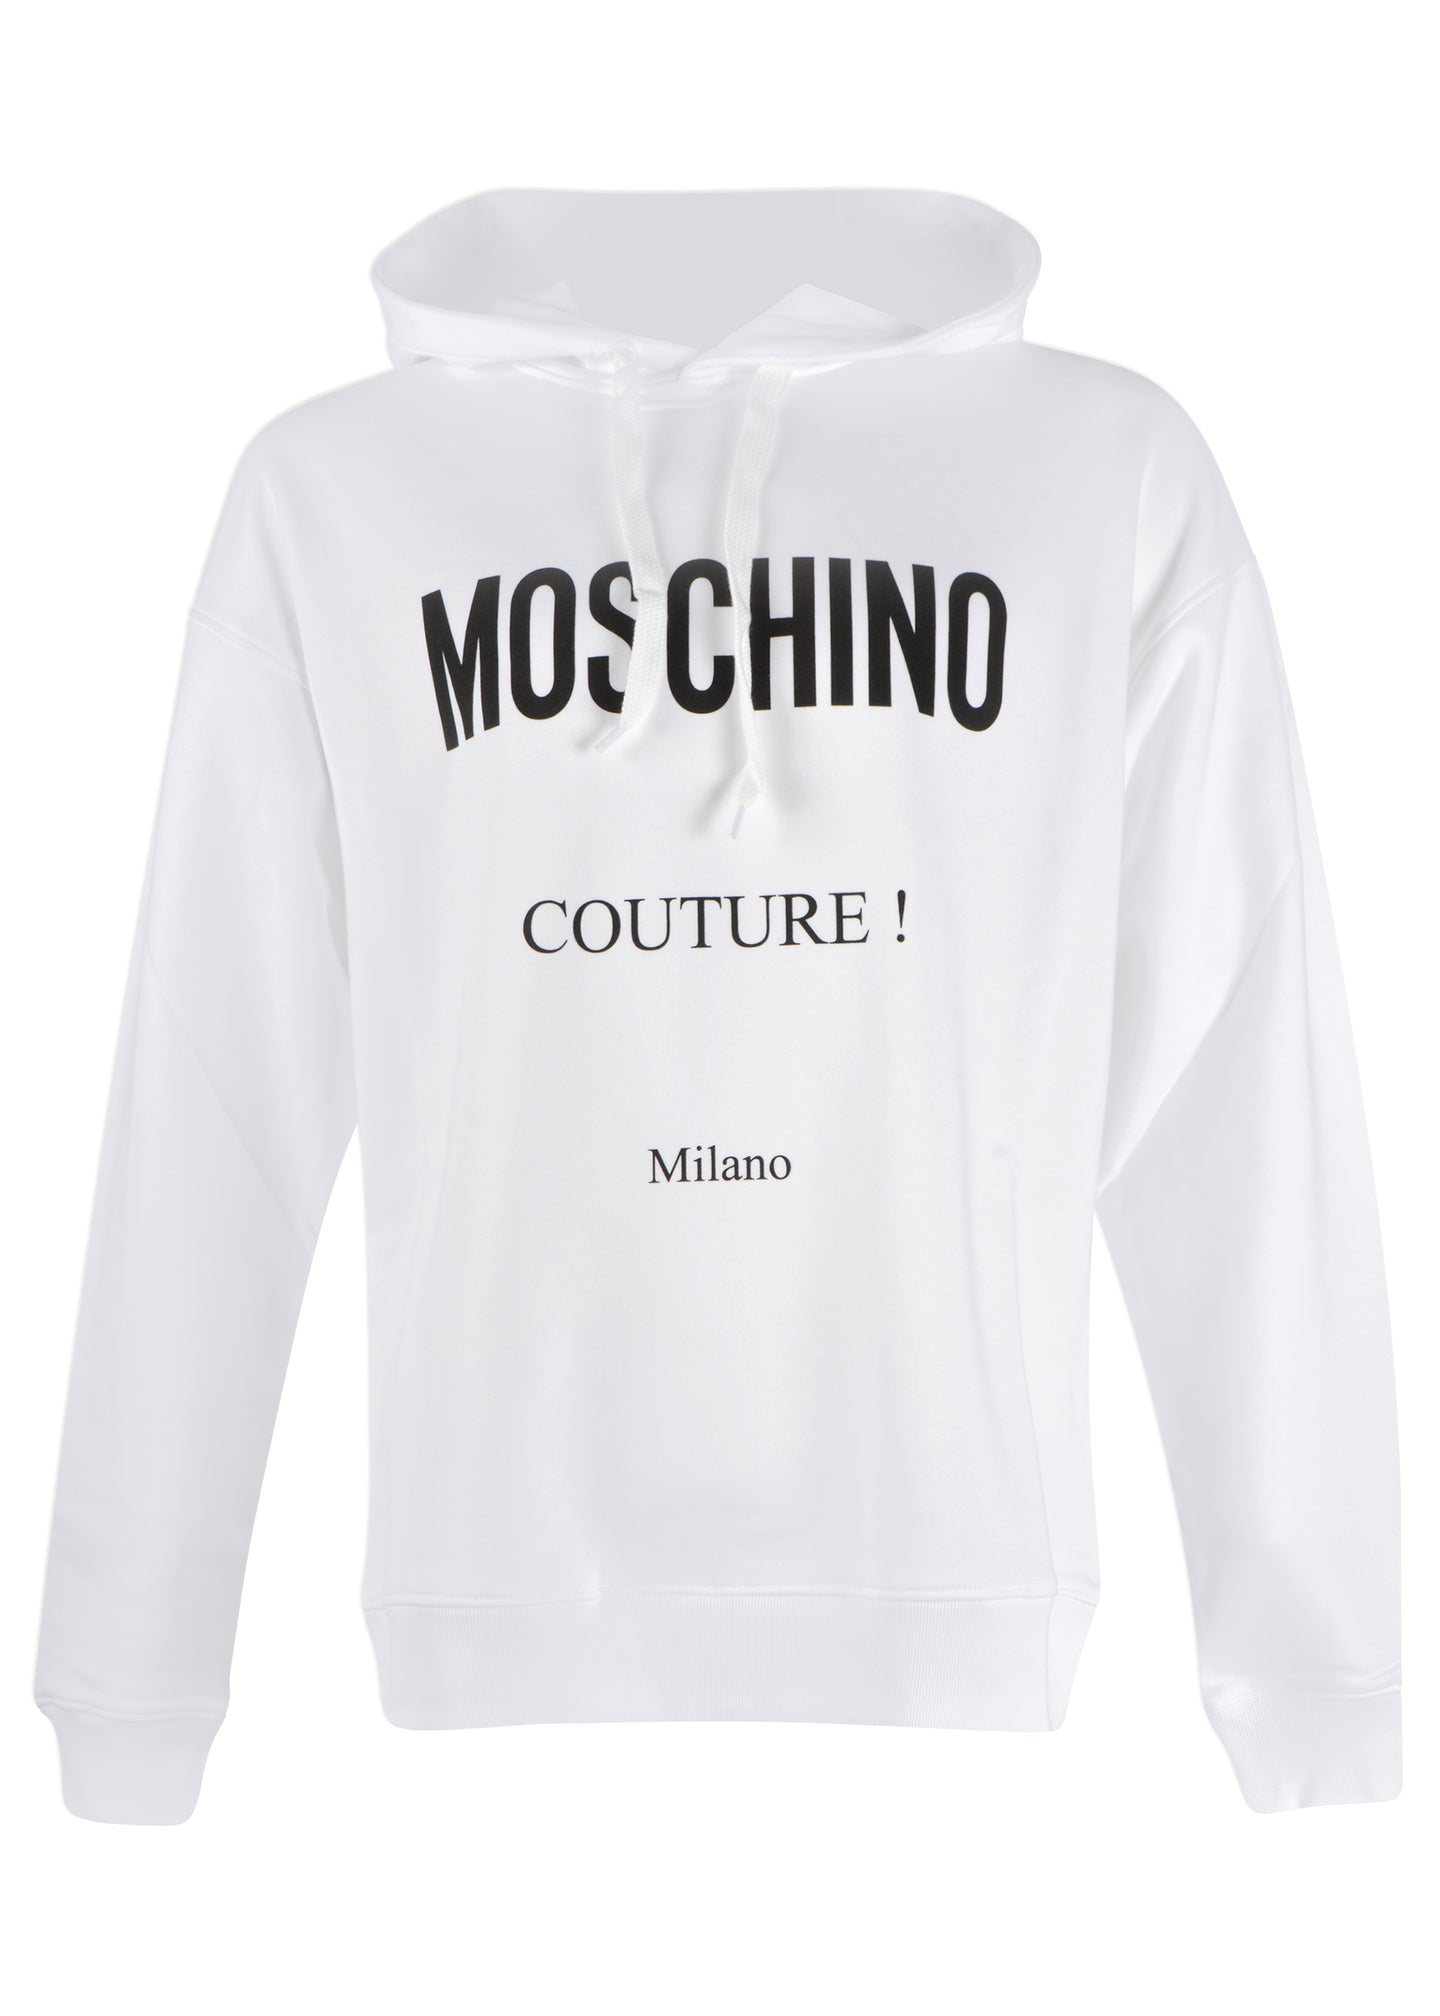 Moschino - Over Head Hooded Oversized Sweatshirt Moschino Couture Milano - 200020 - White